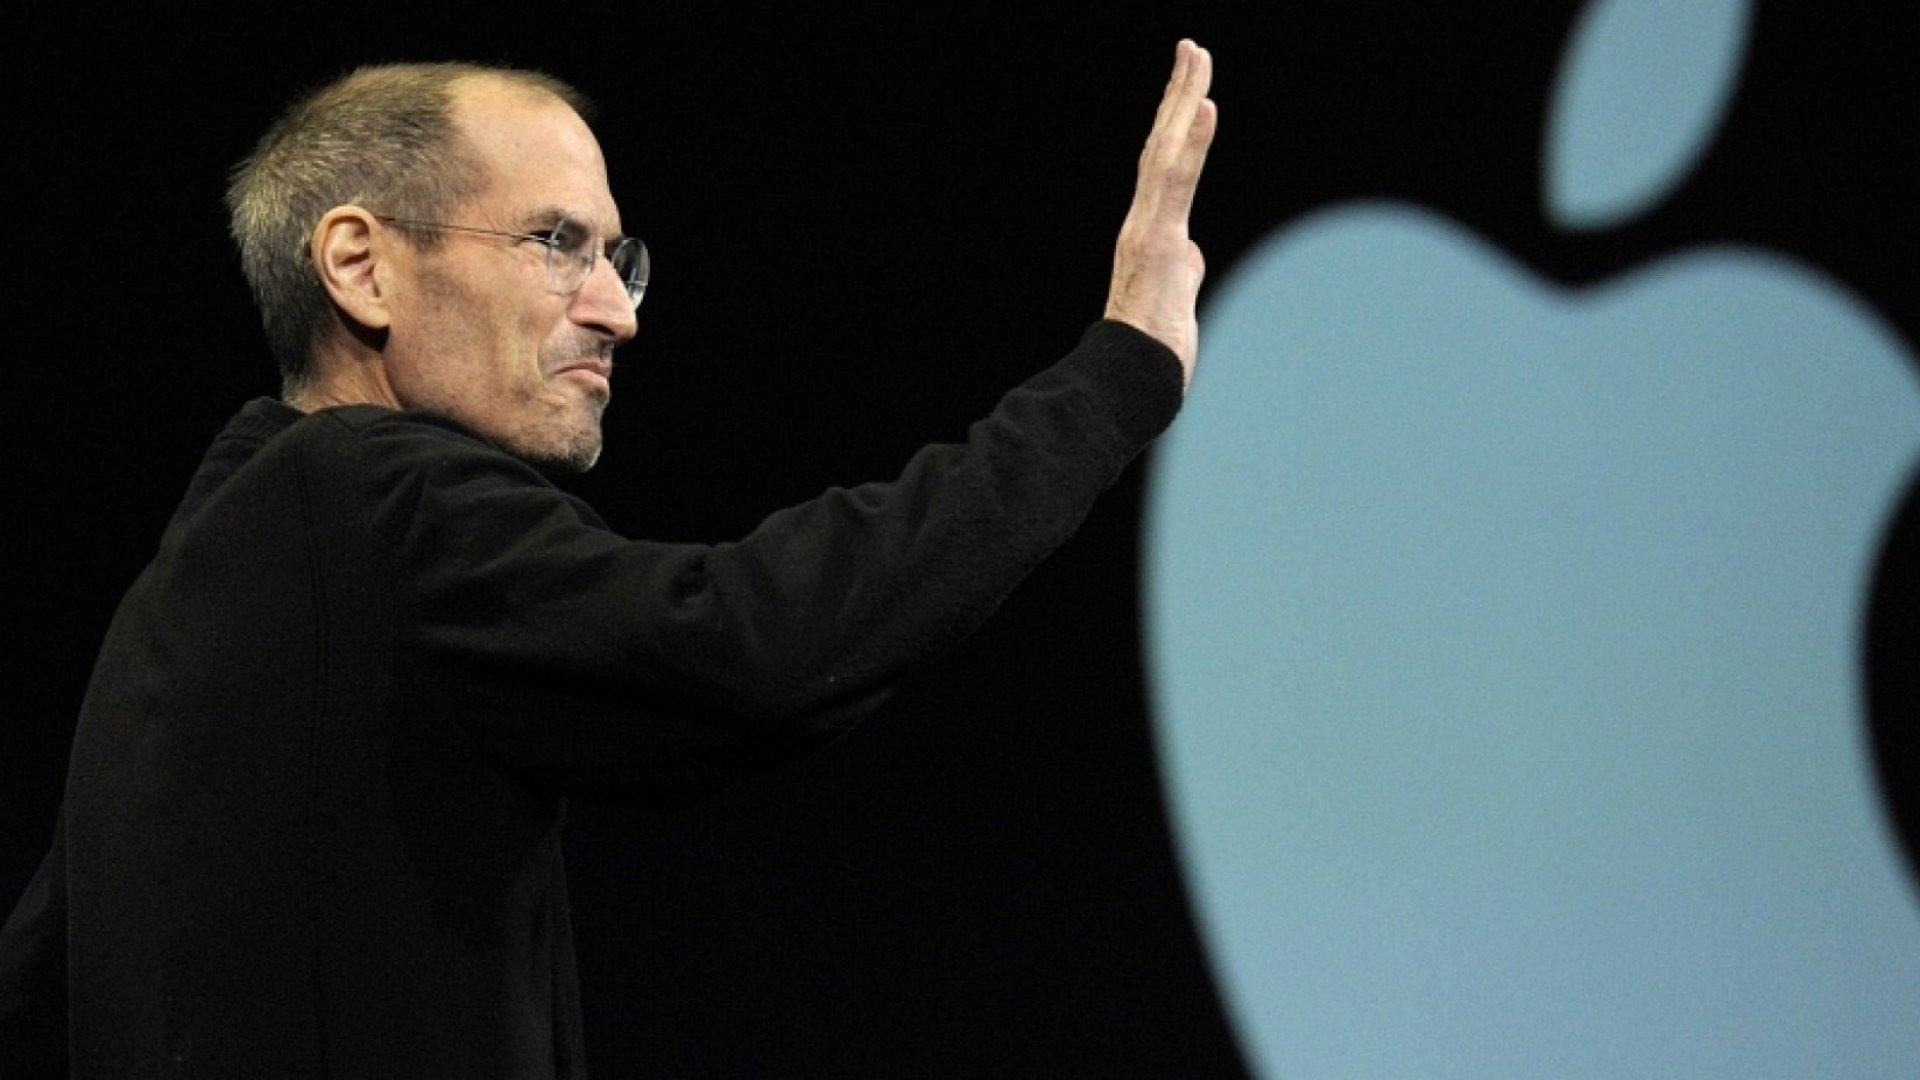 Could a Different Steve Jobs Have Done Even More at Apple?